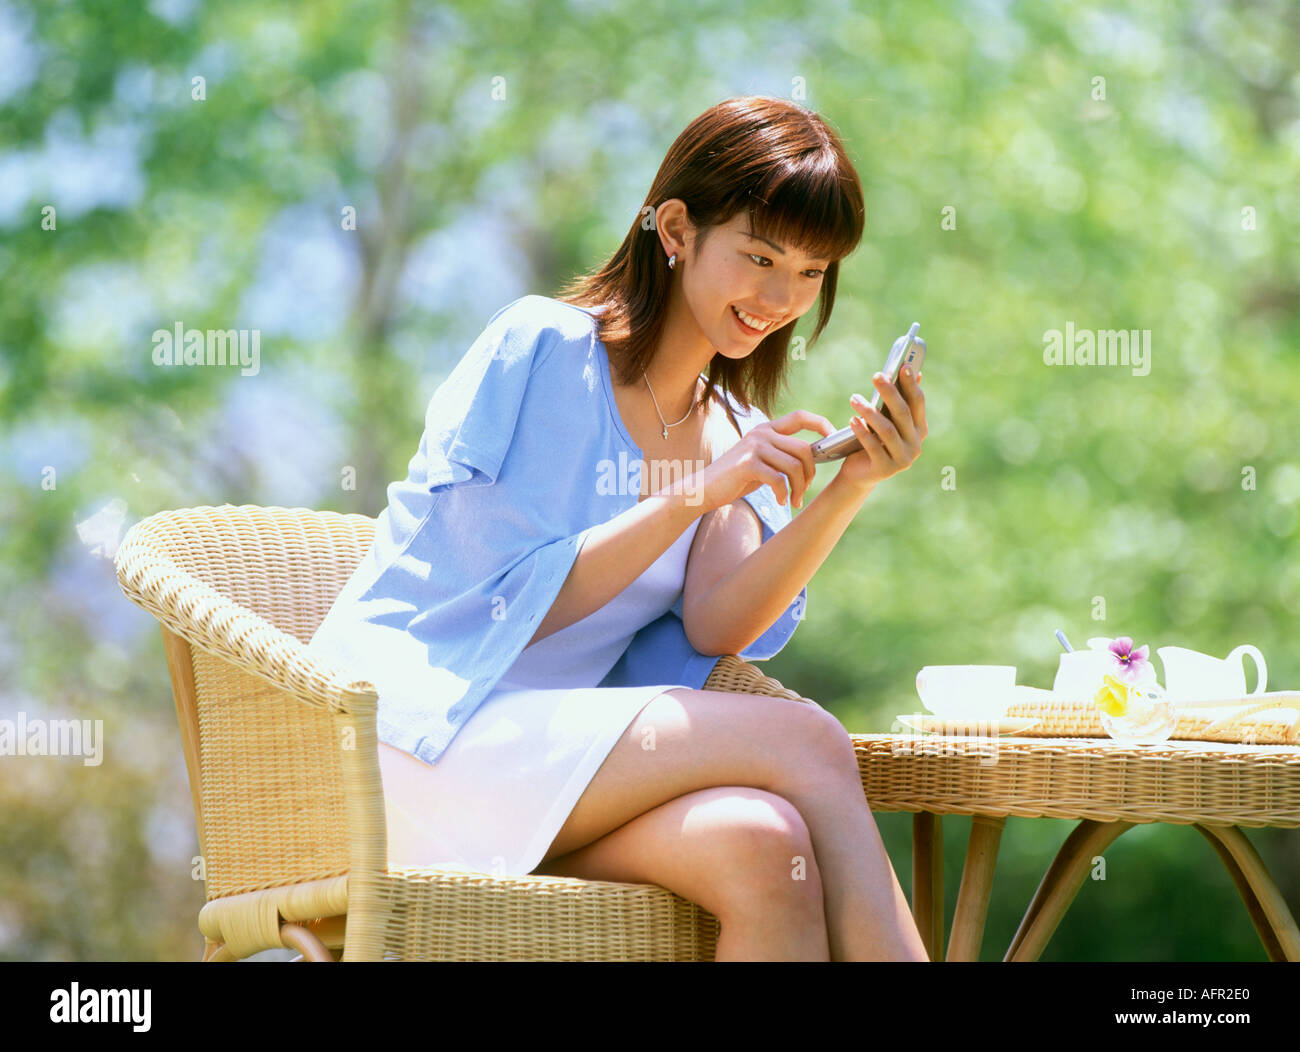 Woman on the Mobile phone - Stock Image